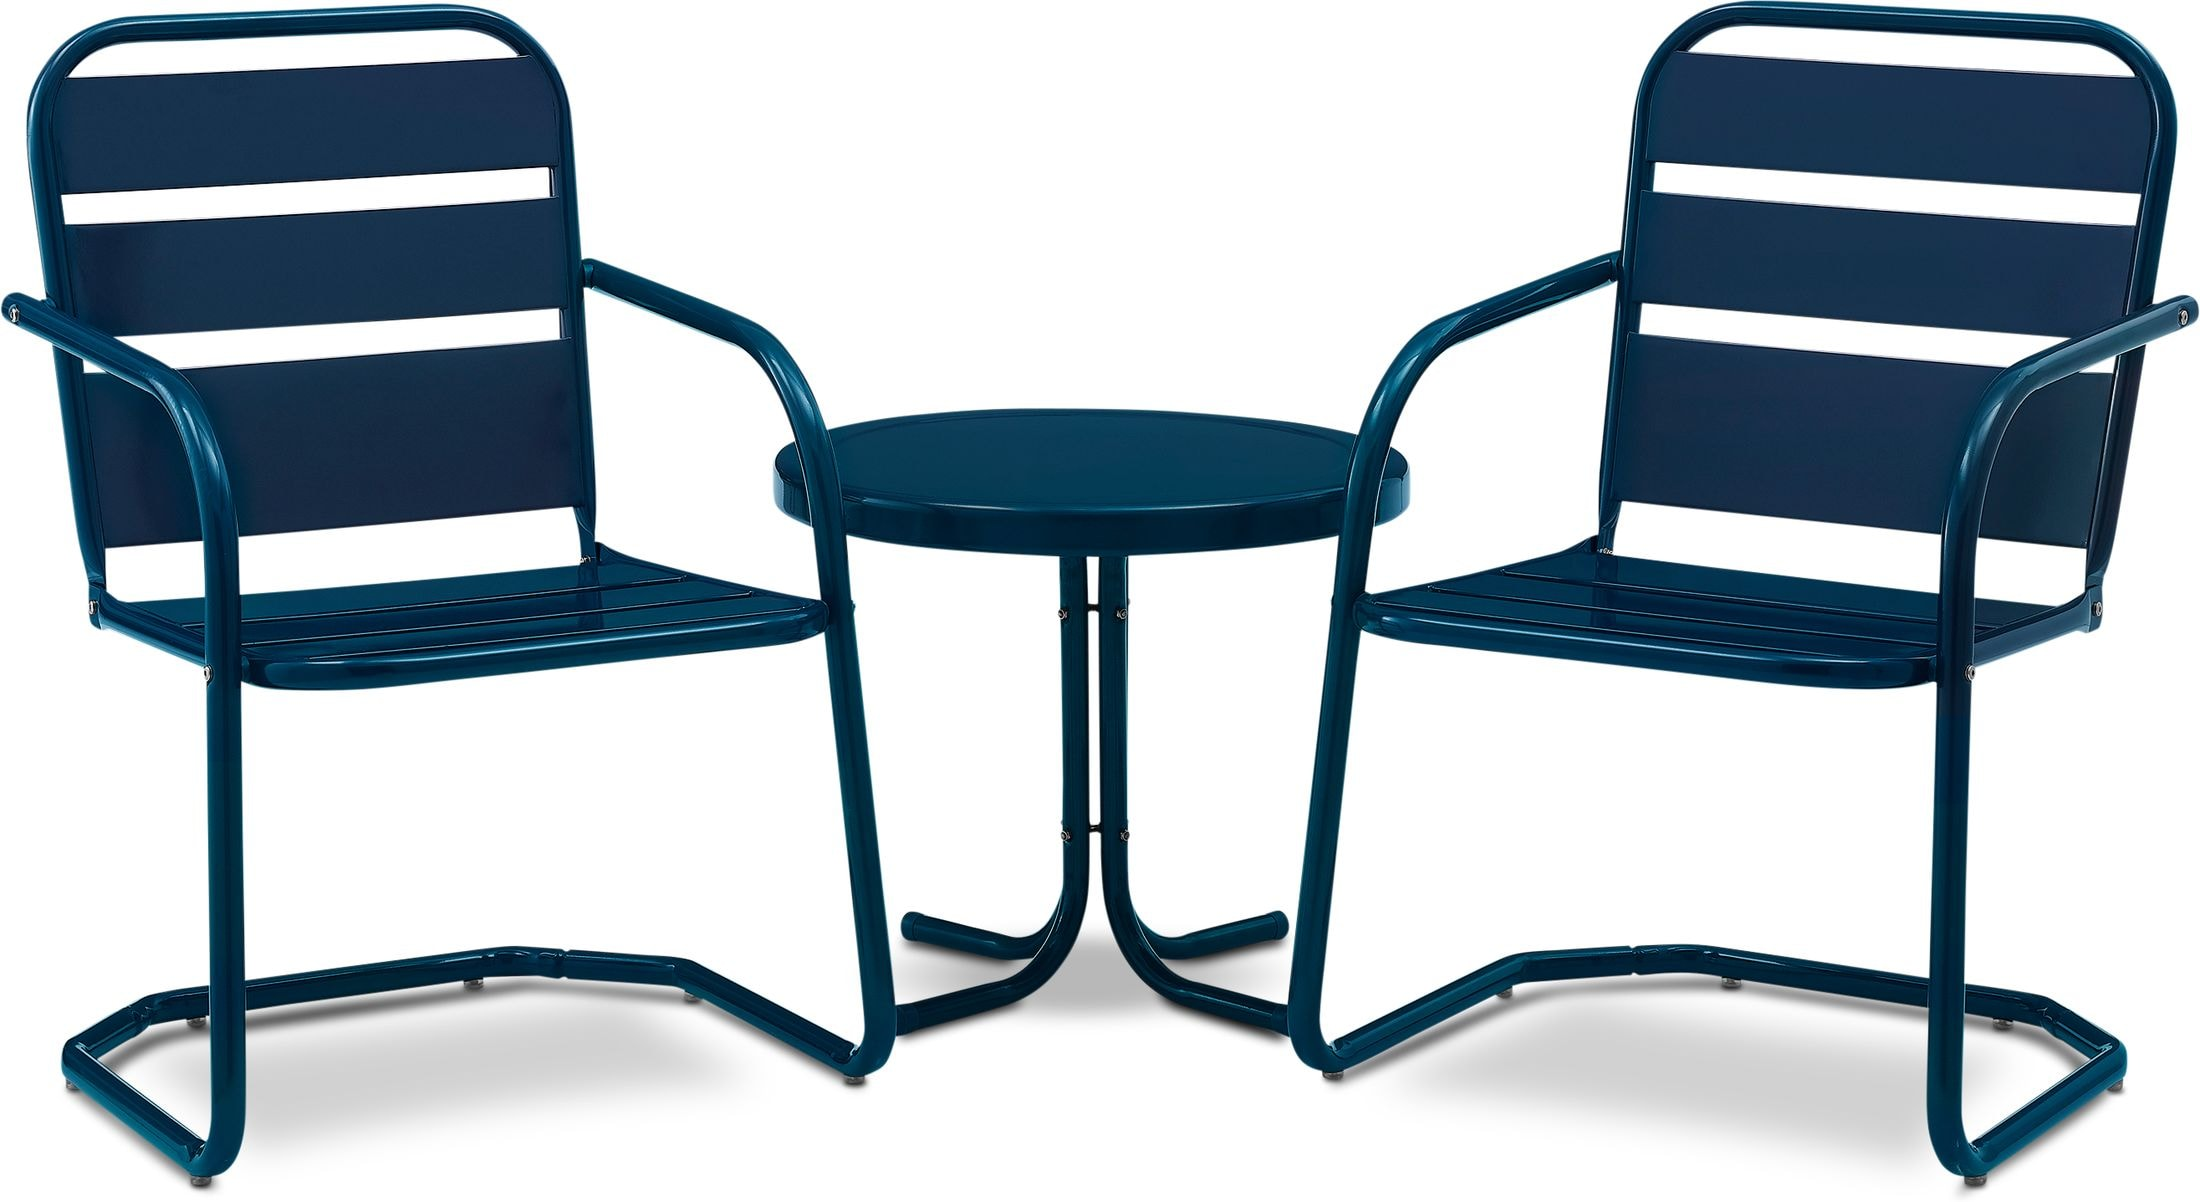 Outdoor Furniture - Wallace Set of 2 Outdoor Chairs and Side Table